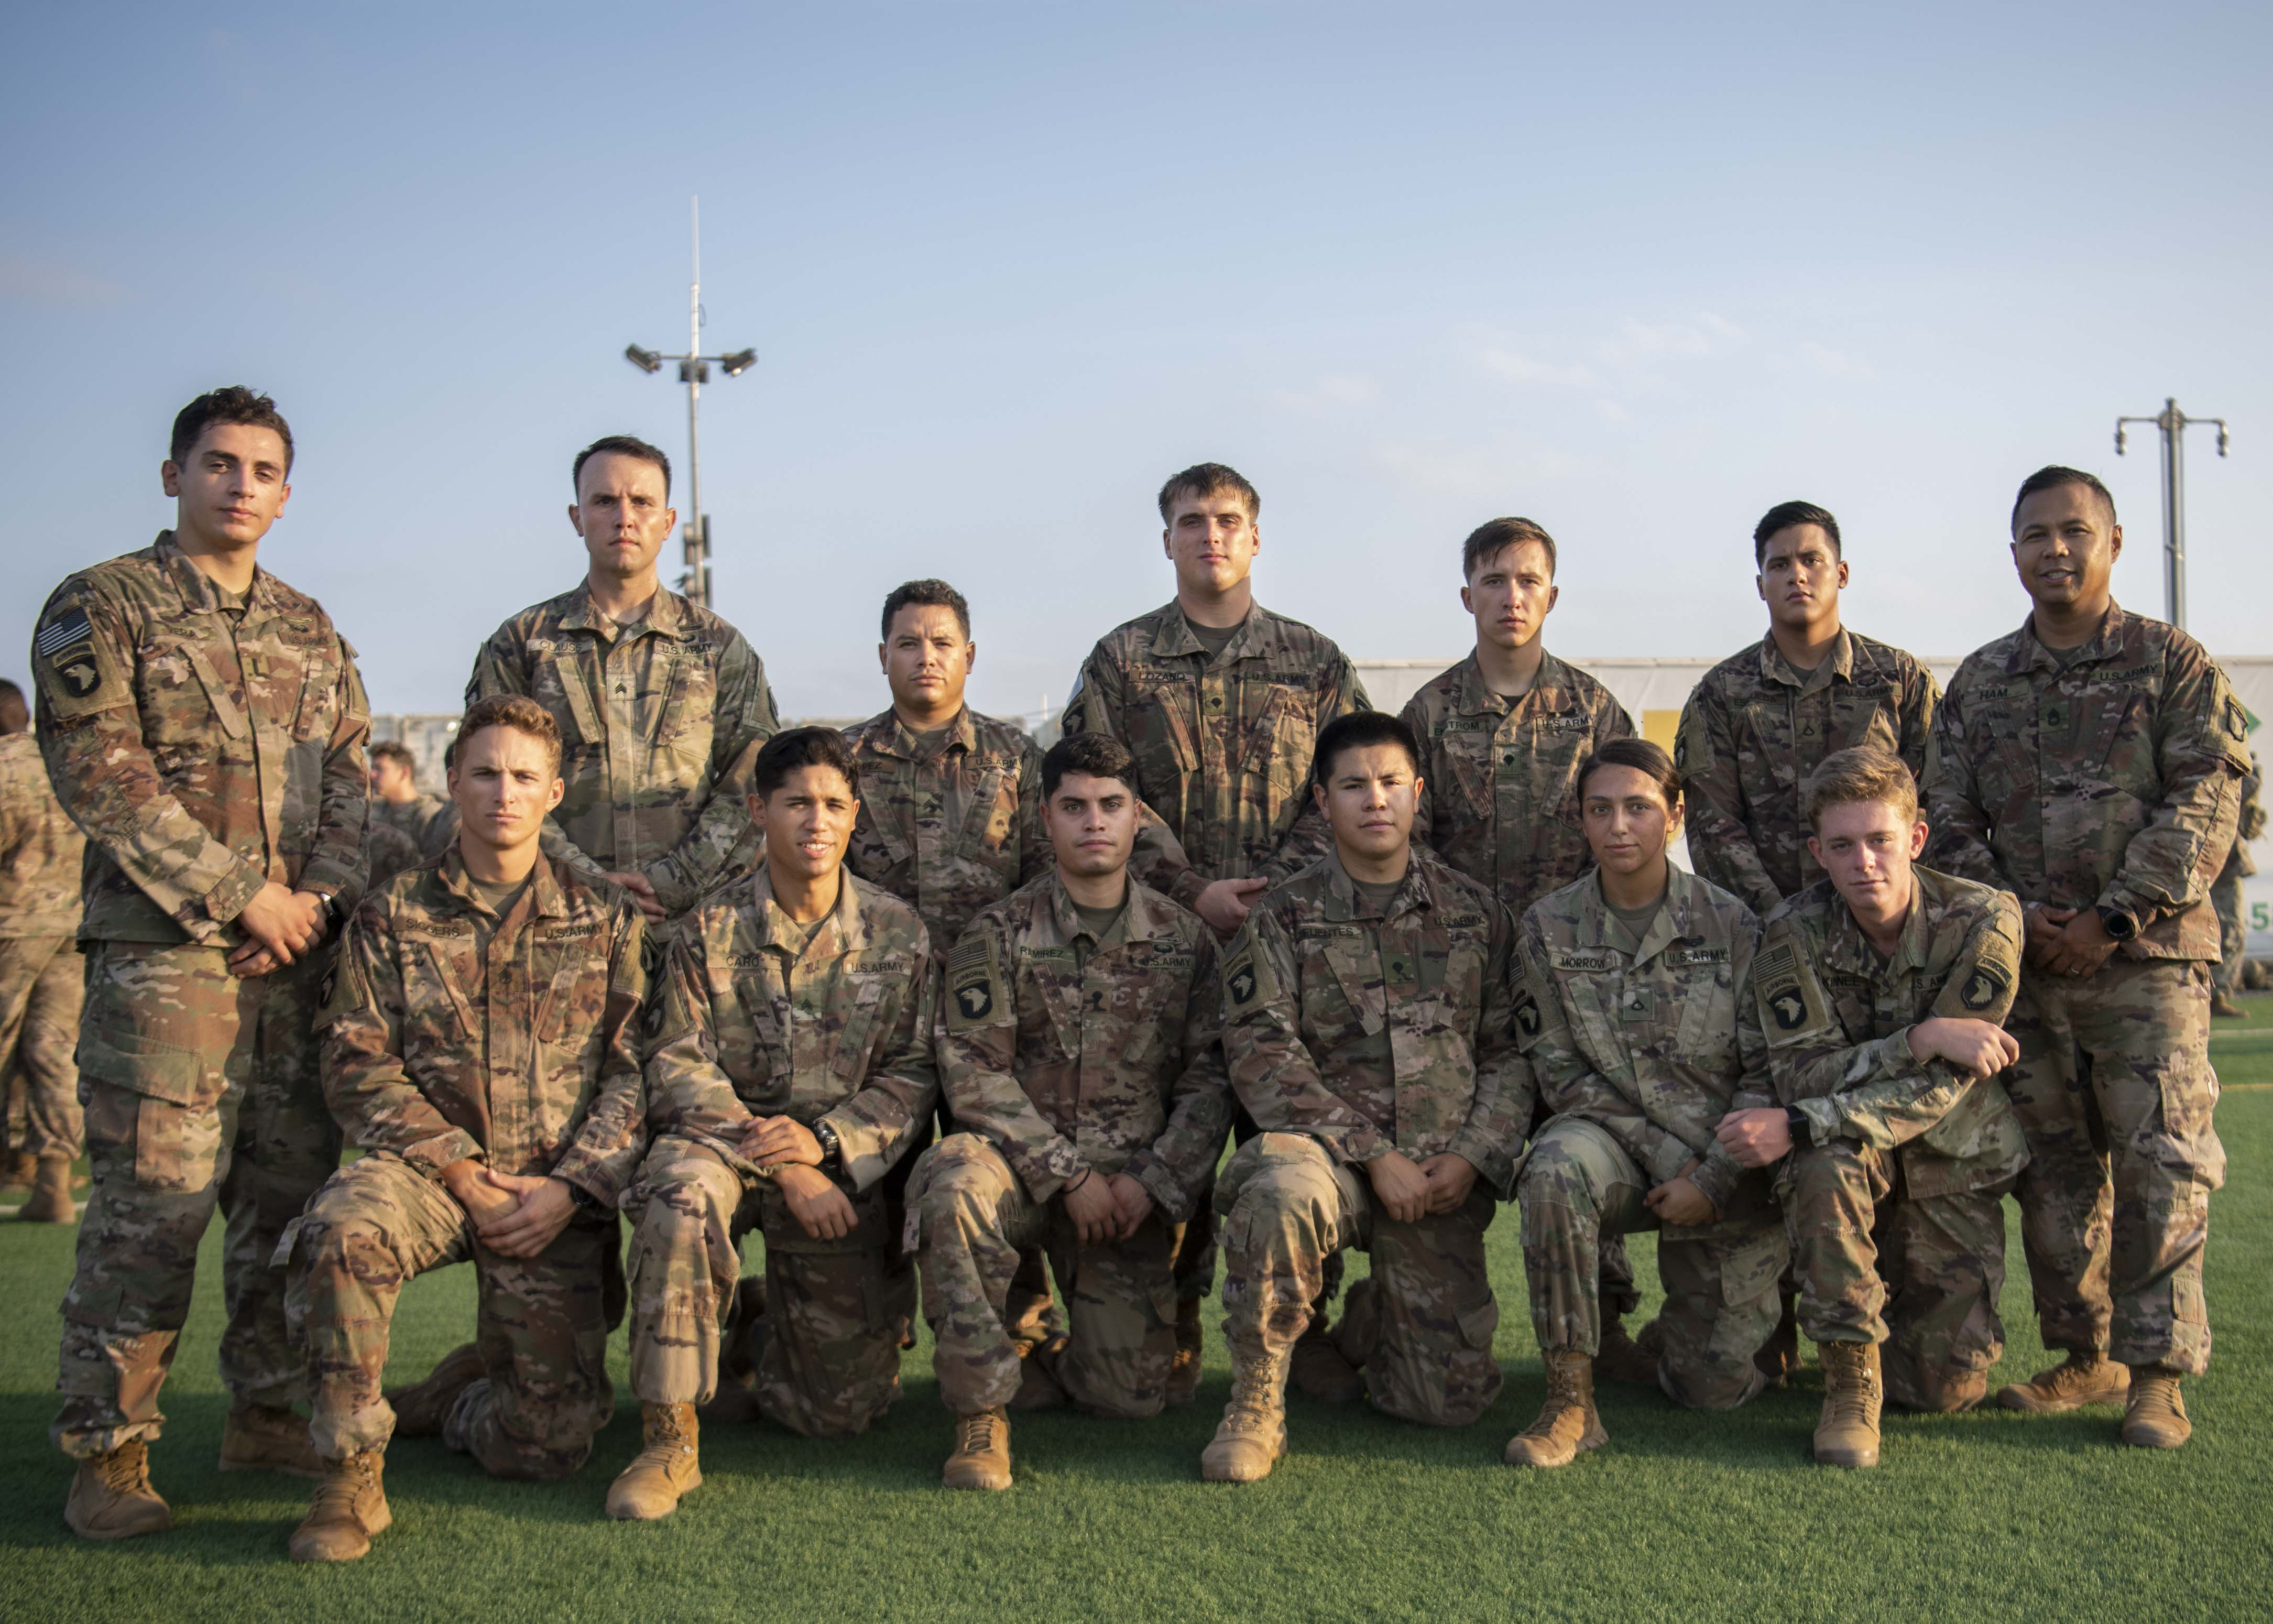 U.S. Army Soldiers from the 101st Division, 2nd Battalion, 506th Infantry Regiment, 4th Platoon, East African Response Force (EARF), pose for a group photo after the EARF's best platoon competition at Camp Lemonnier, Djibouti, Oct. 25, 2019. 4th Platoon was the winner of the EARF's best platoon competition. (U.S. Air Force photo by Staff Sgt. J.D. Strong II